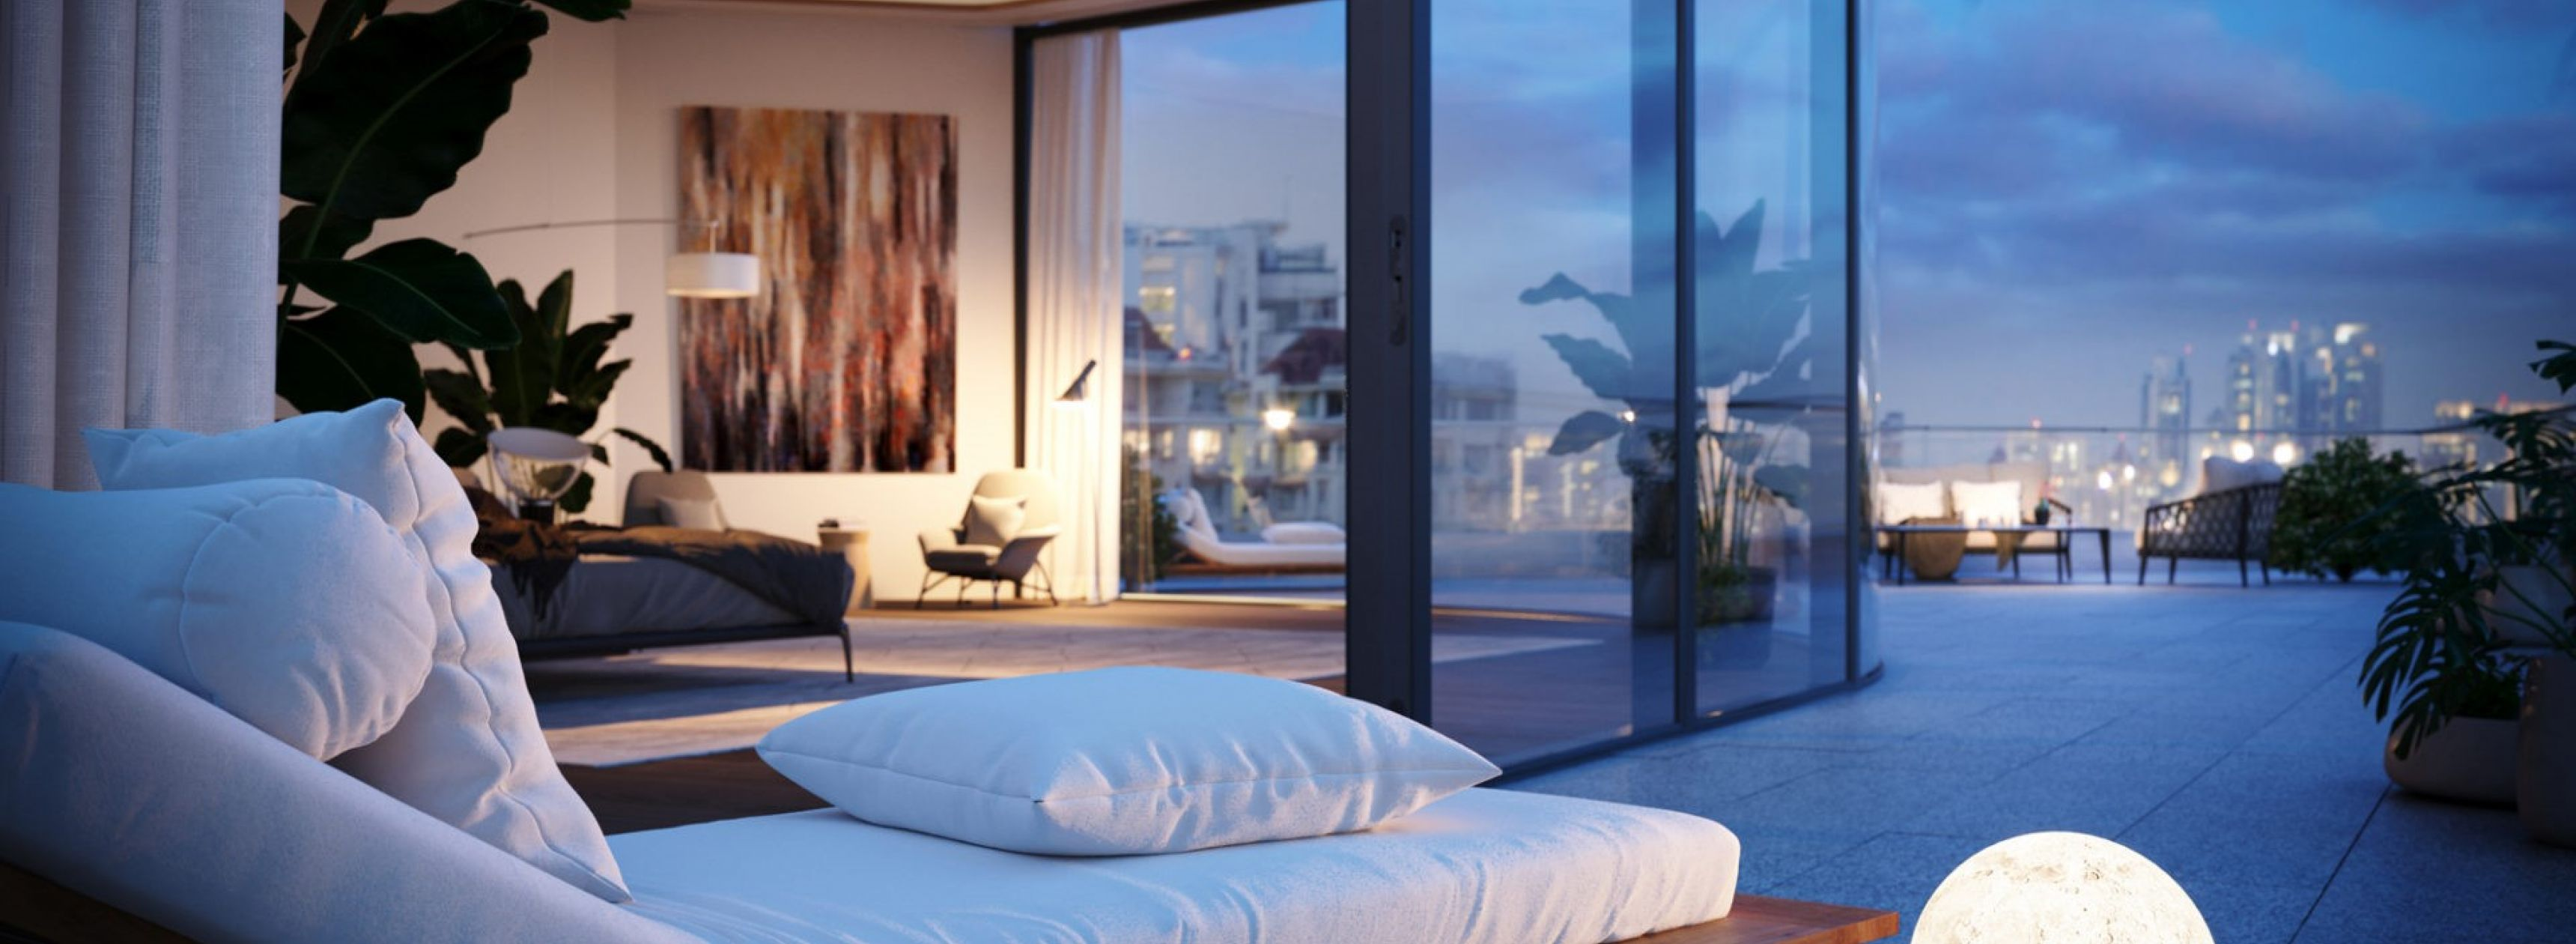 The Boundary designed hotel room photo realistic rendering